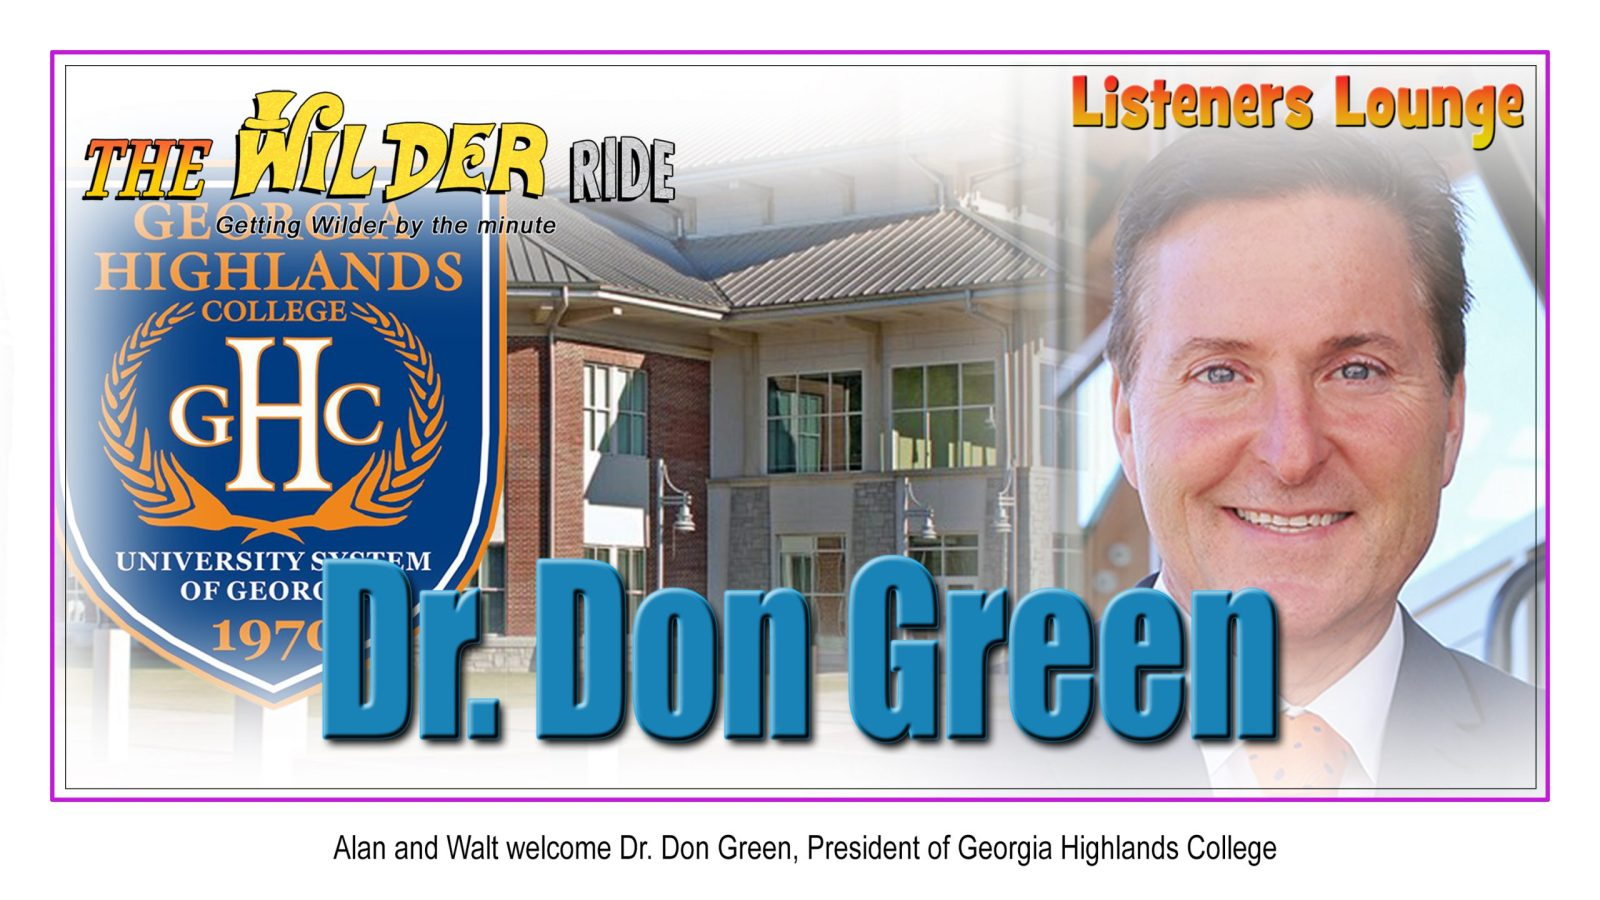 Dr. Don Green